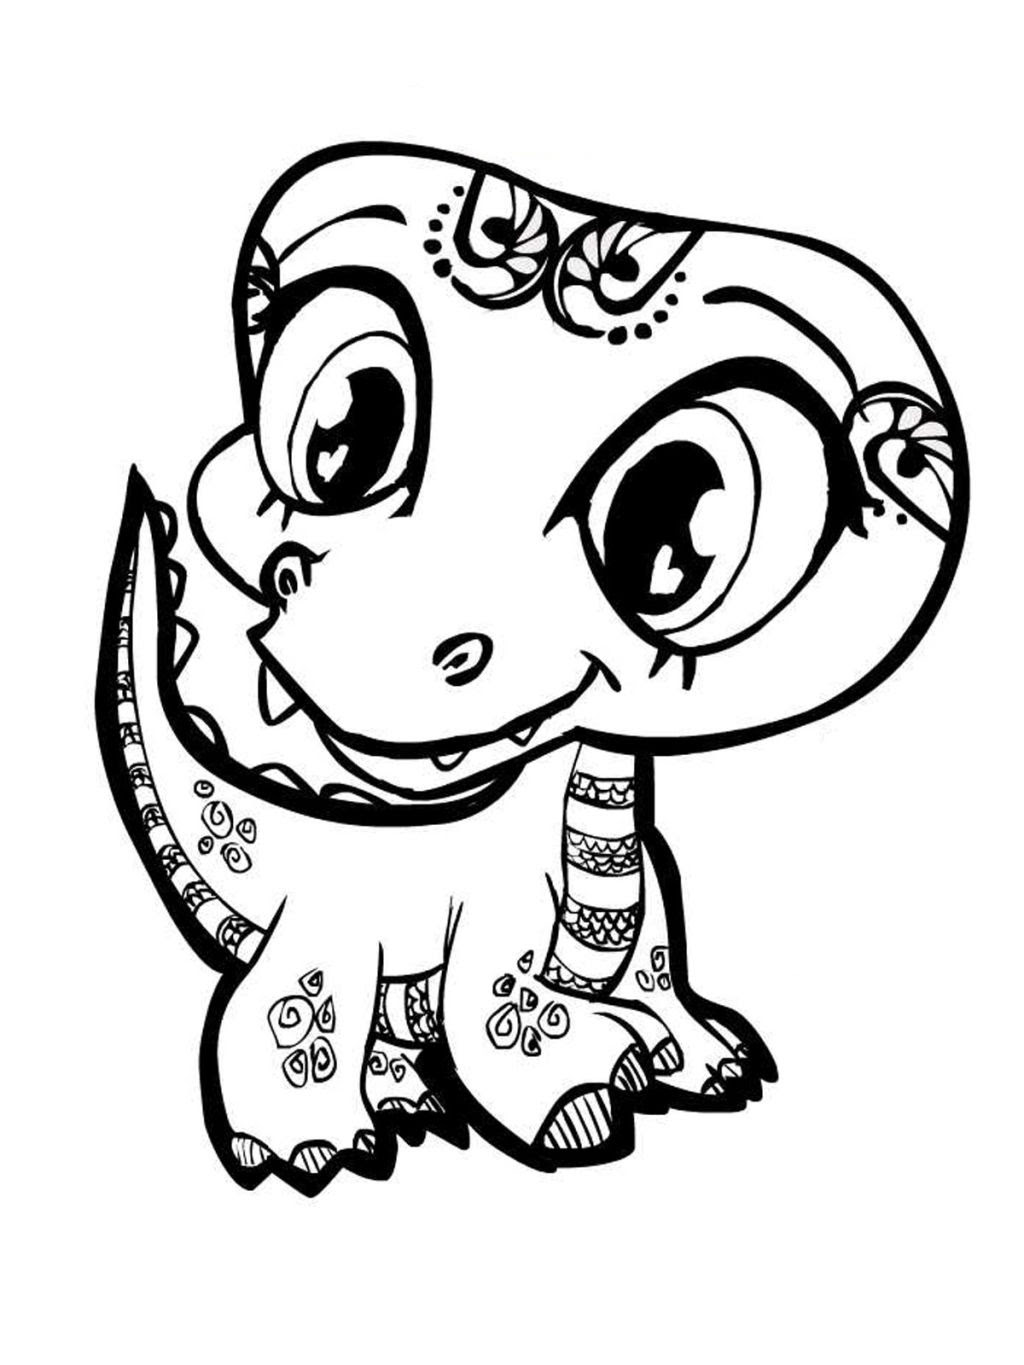 630 Top Really Cute Animals Coloring Pages Download Free Images